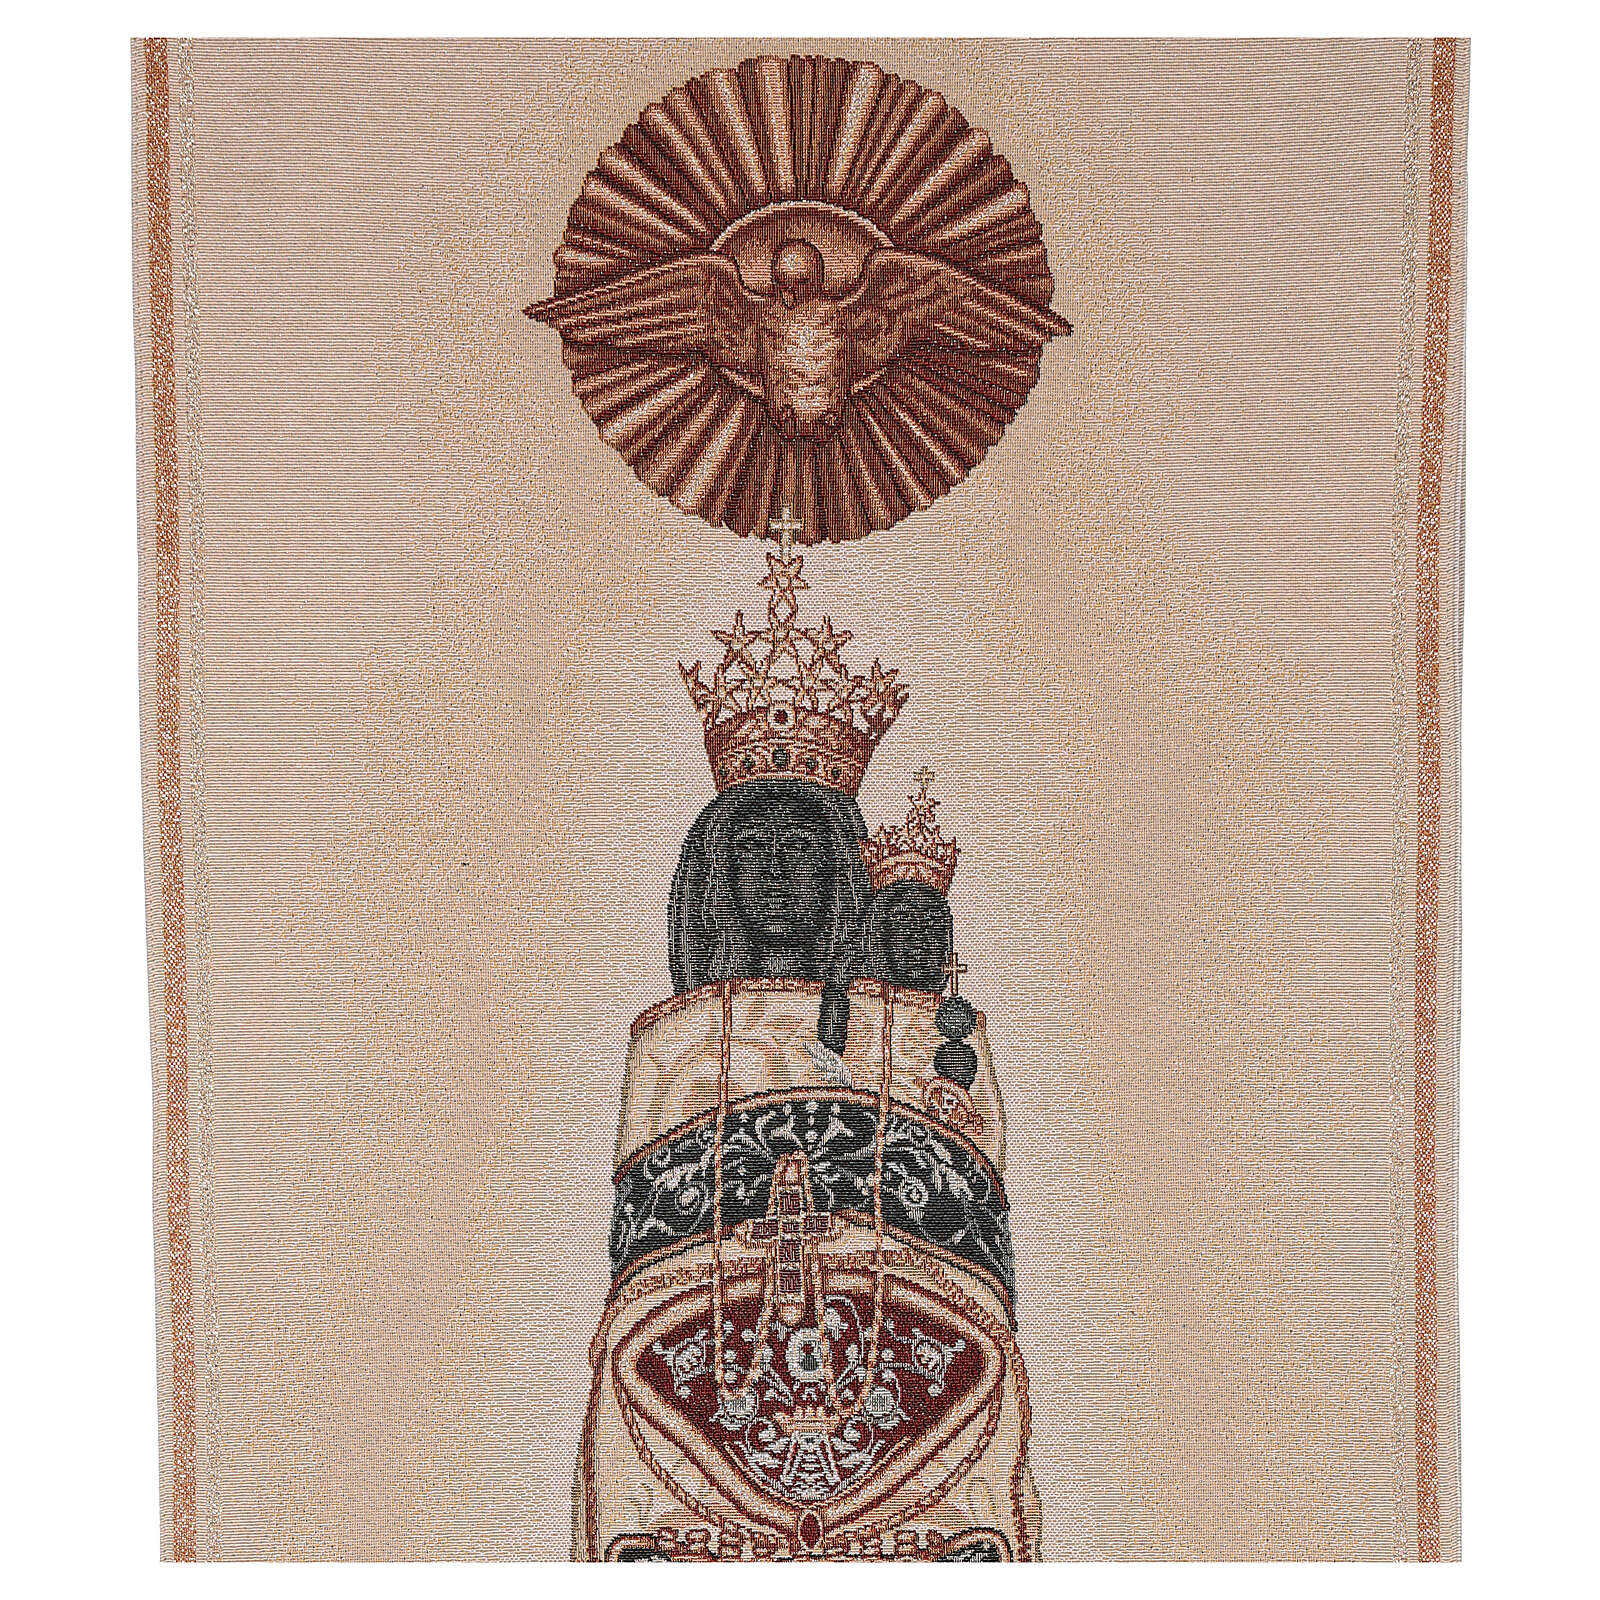 Ivory embroidered pulpit cover of Our Lady of Loreto 4